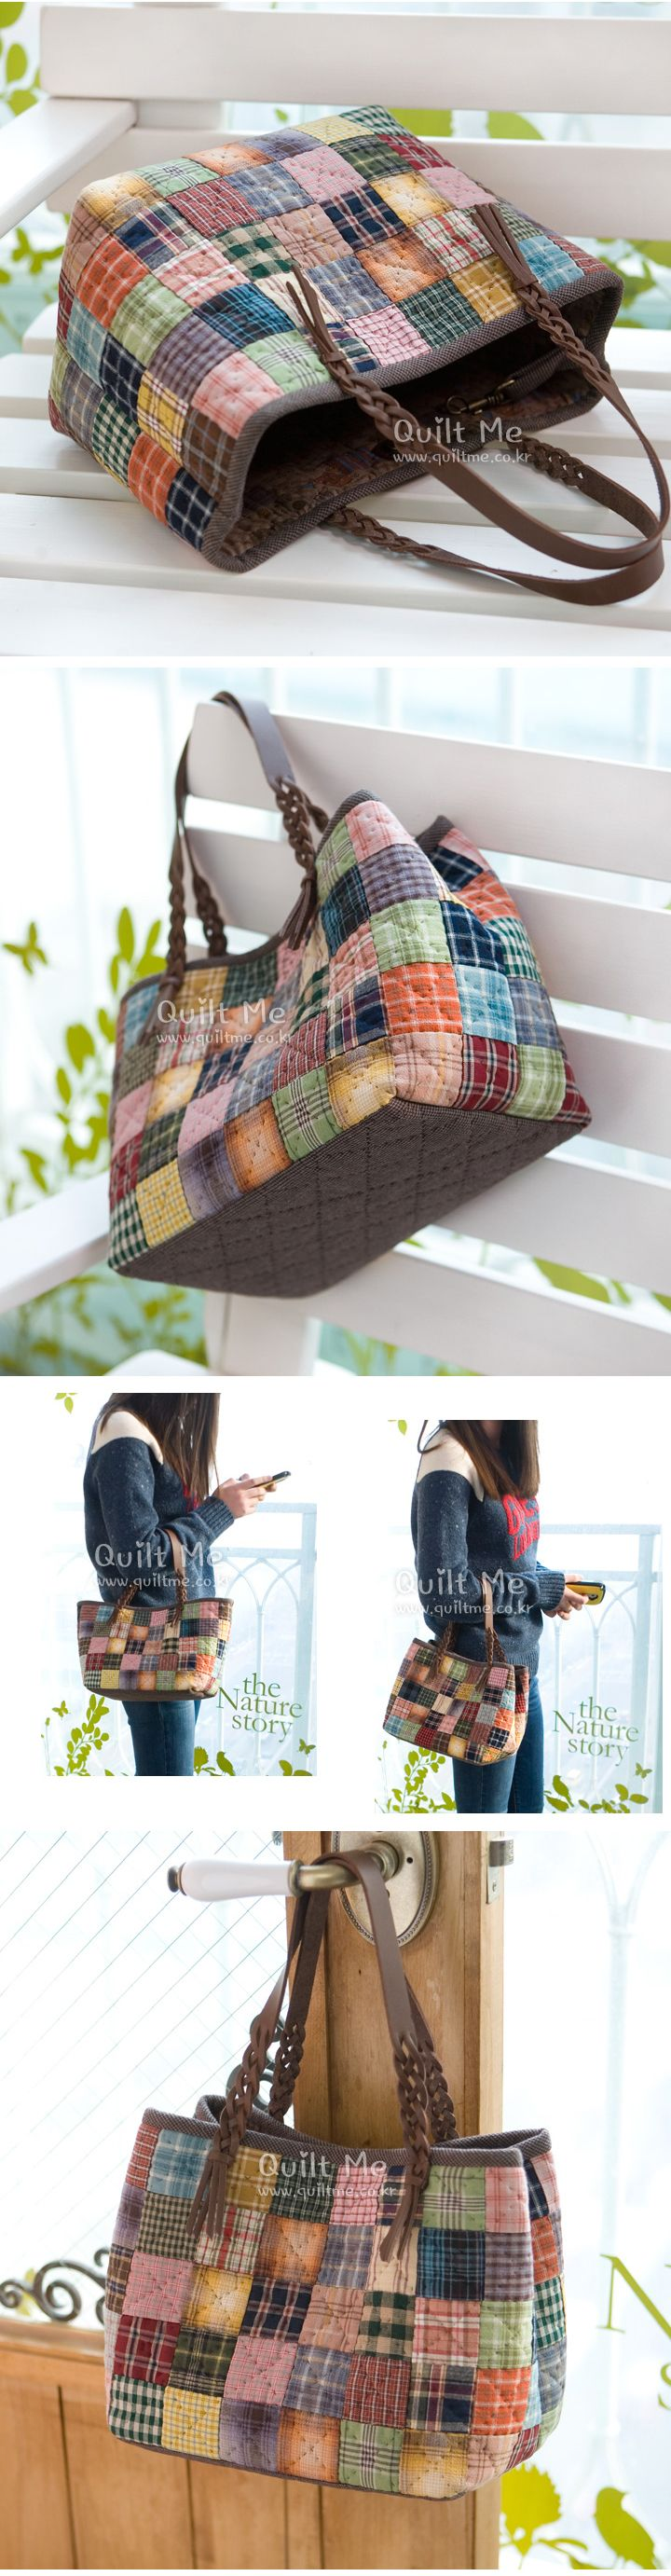 Nice bag, site is Korean, bag would be pretty easy to make without a pattern. http://www.quiltme.co.kr